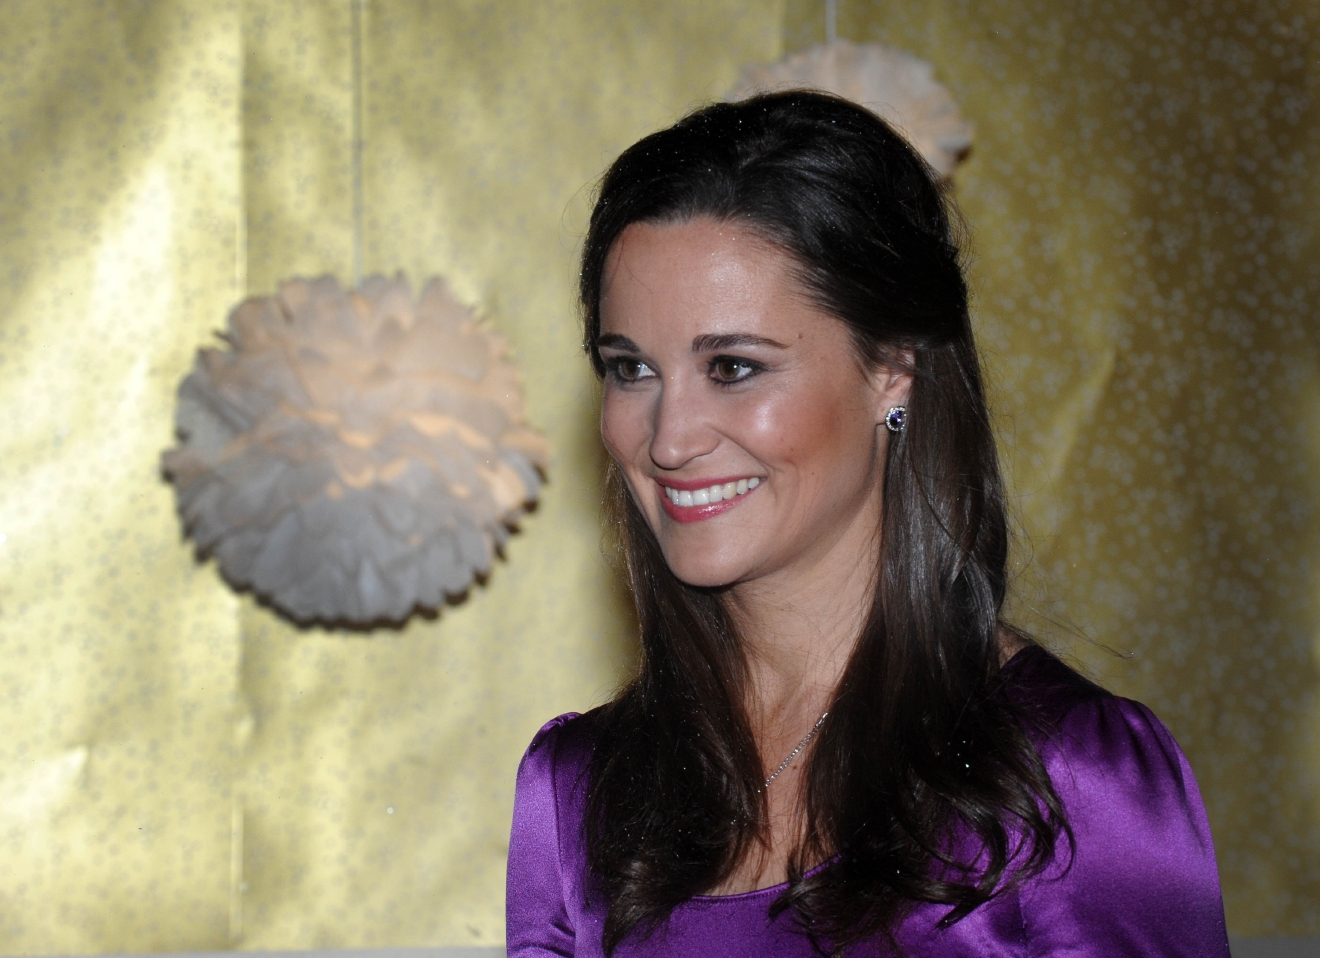 Pippa Middleton promoting her book ''Celebrate: A Year of Festivities for Family and Friends'' at the de Vries bookstore. Haarlem, The Netherlands - 11.12.2012  Where: UK, United States When: 11 Dec 2012 Credit: WENN  **Only available for publication in UK, USA, Germany, France, Spain, Austria, Switzerland**